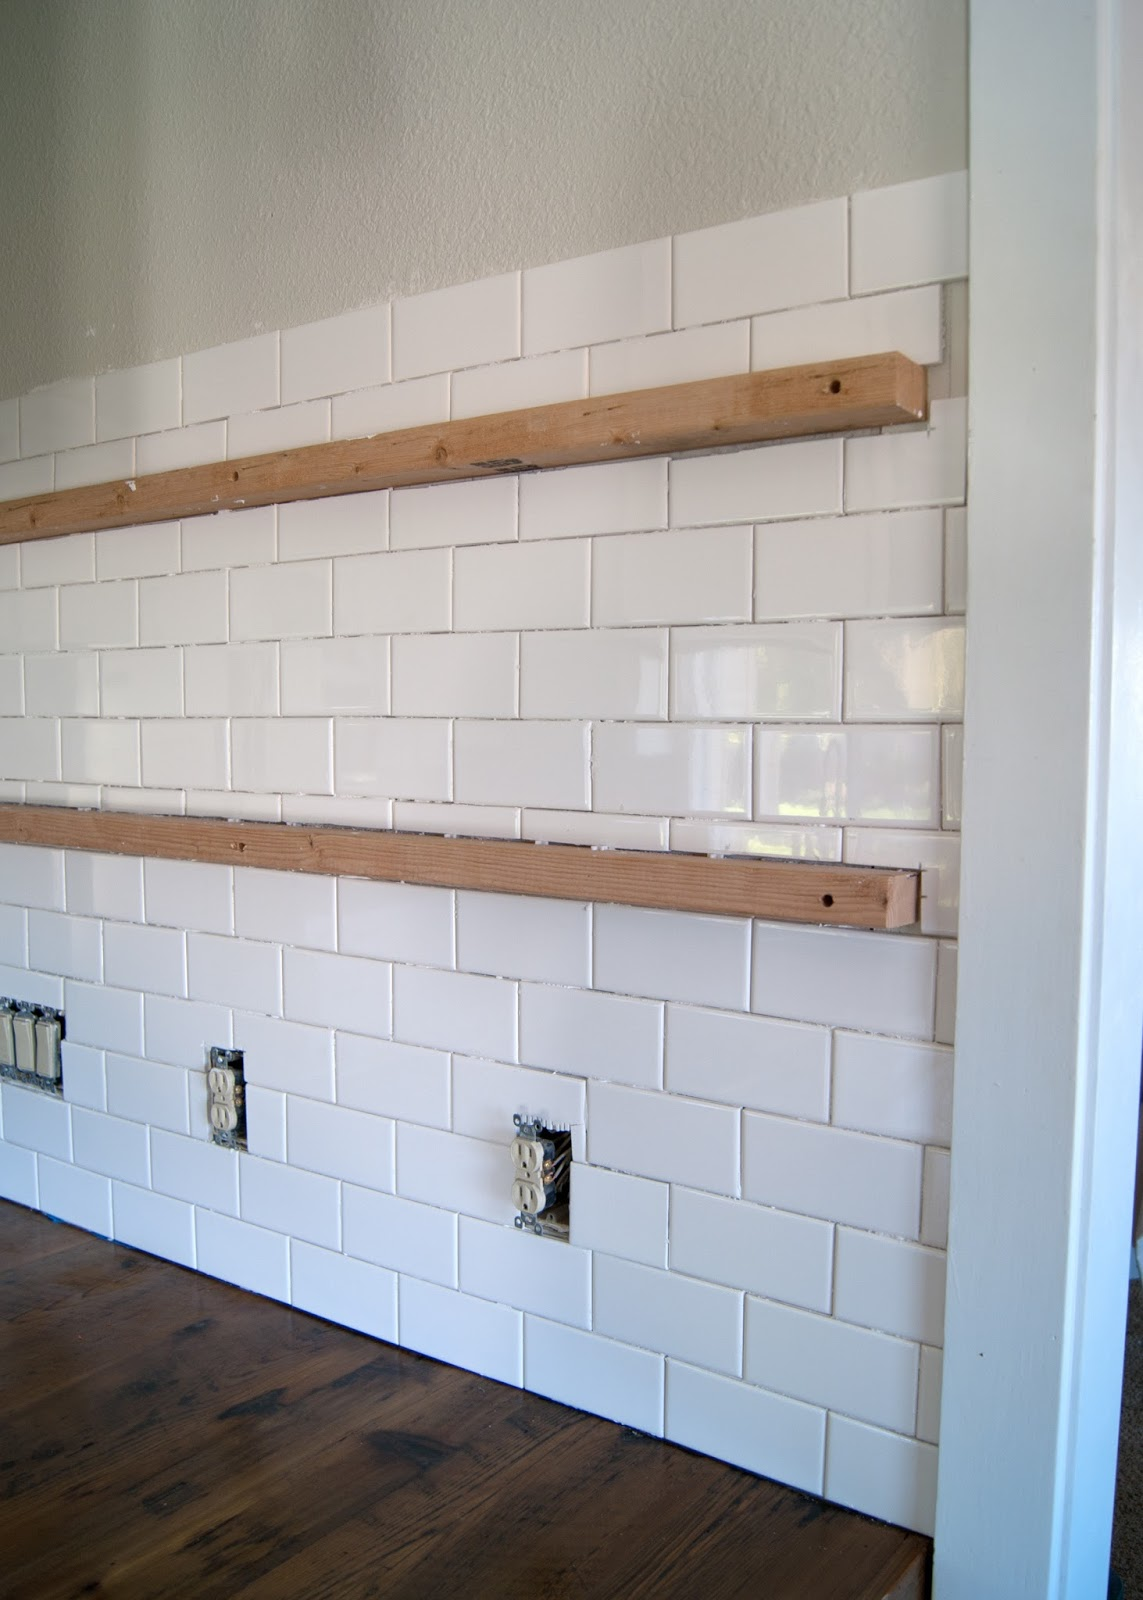 Subway tile installation tips on grouting with fusion pro im dailygadgetfo Choice Image